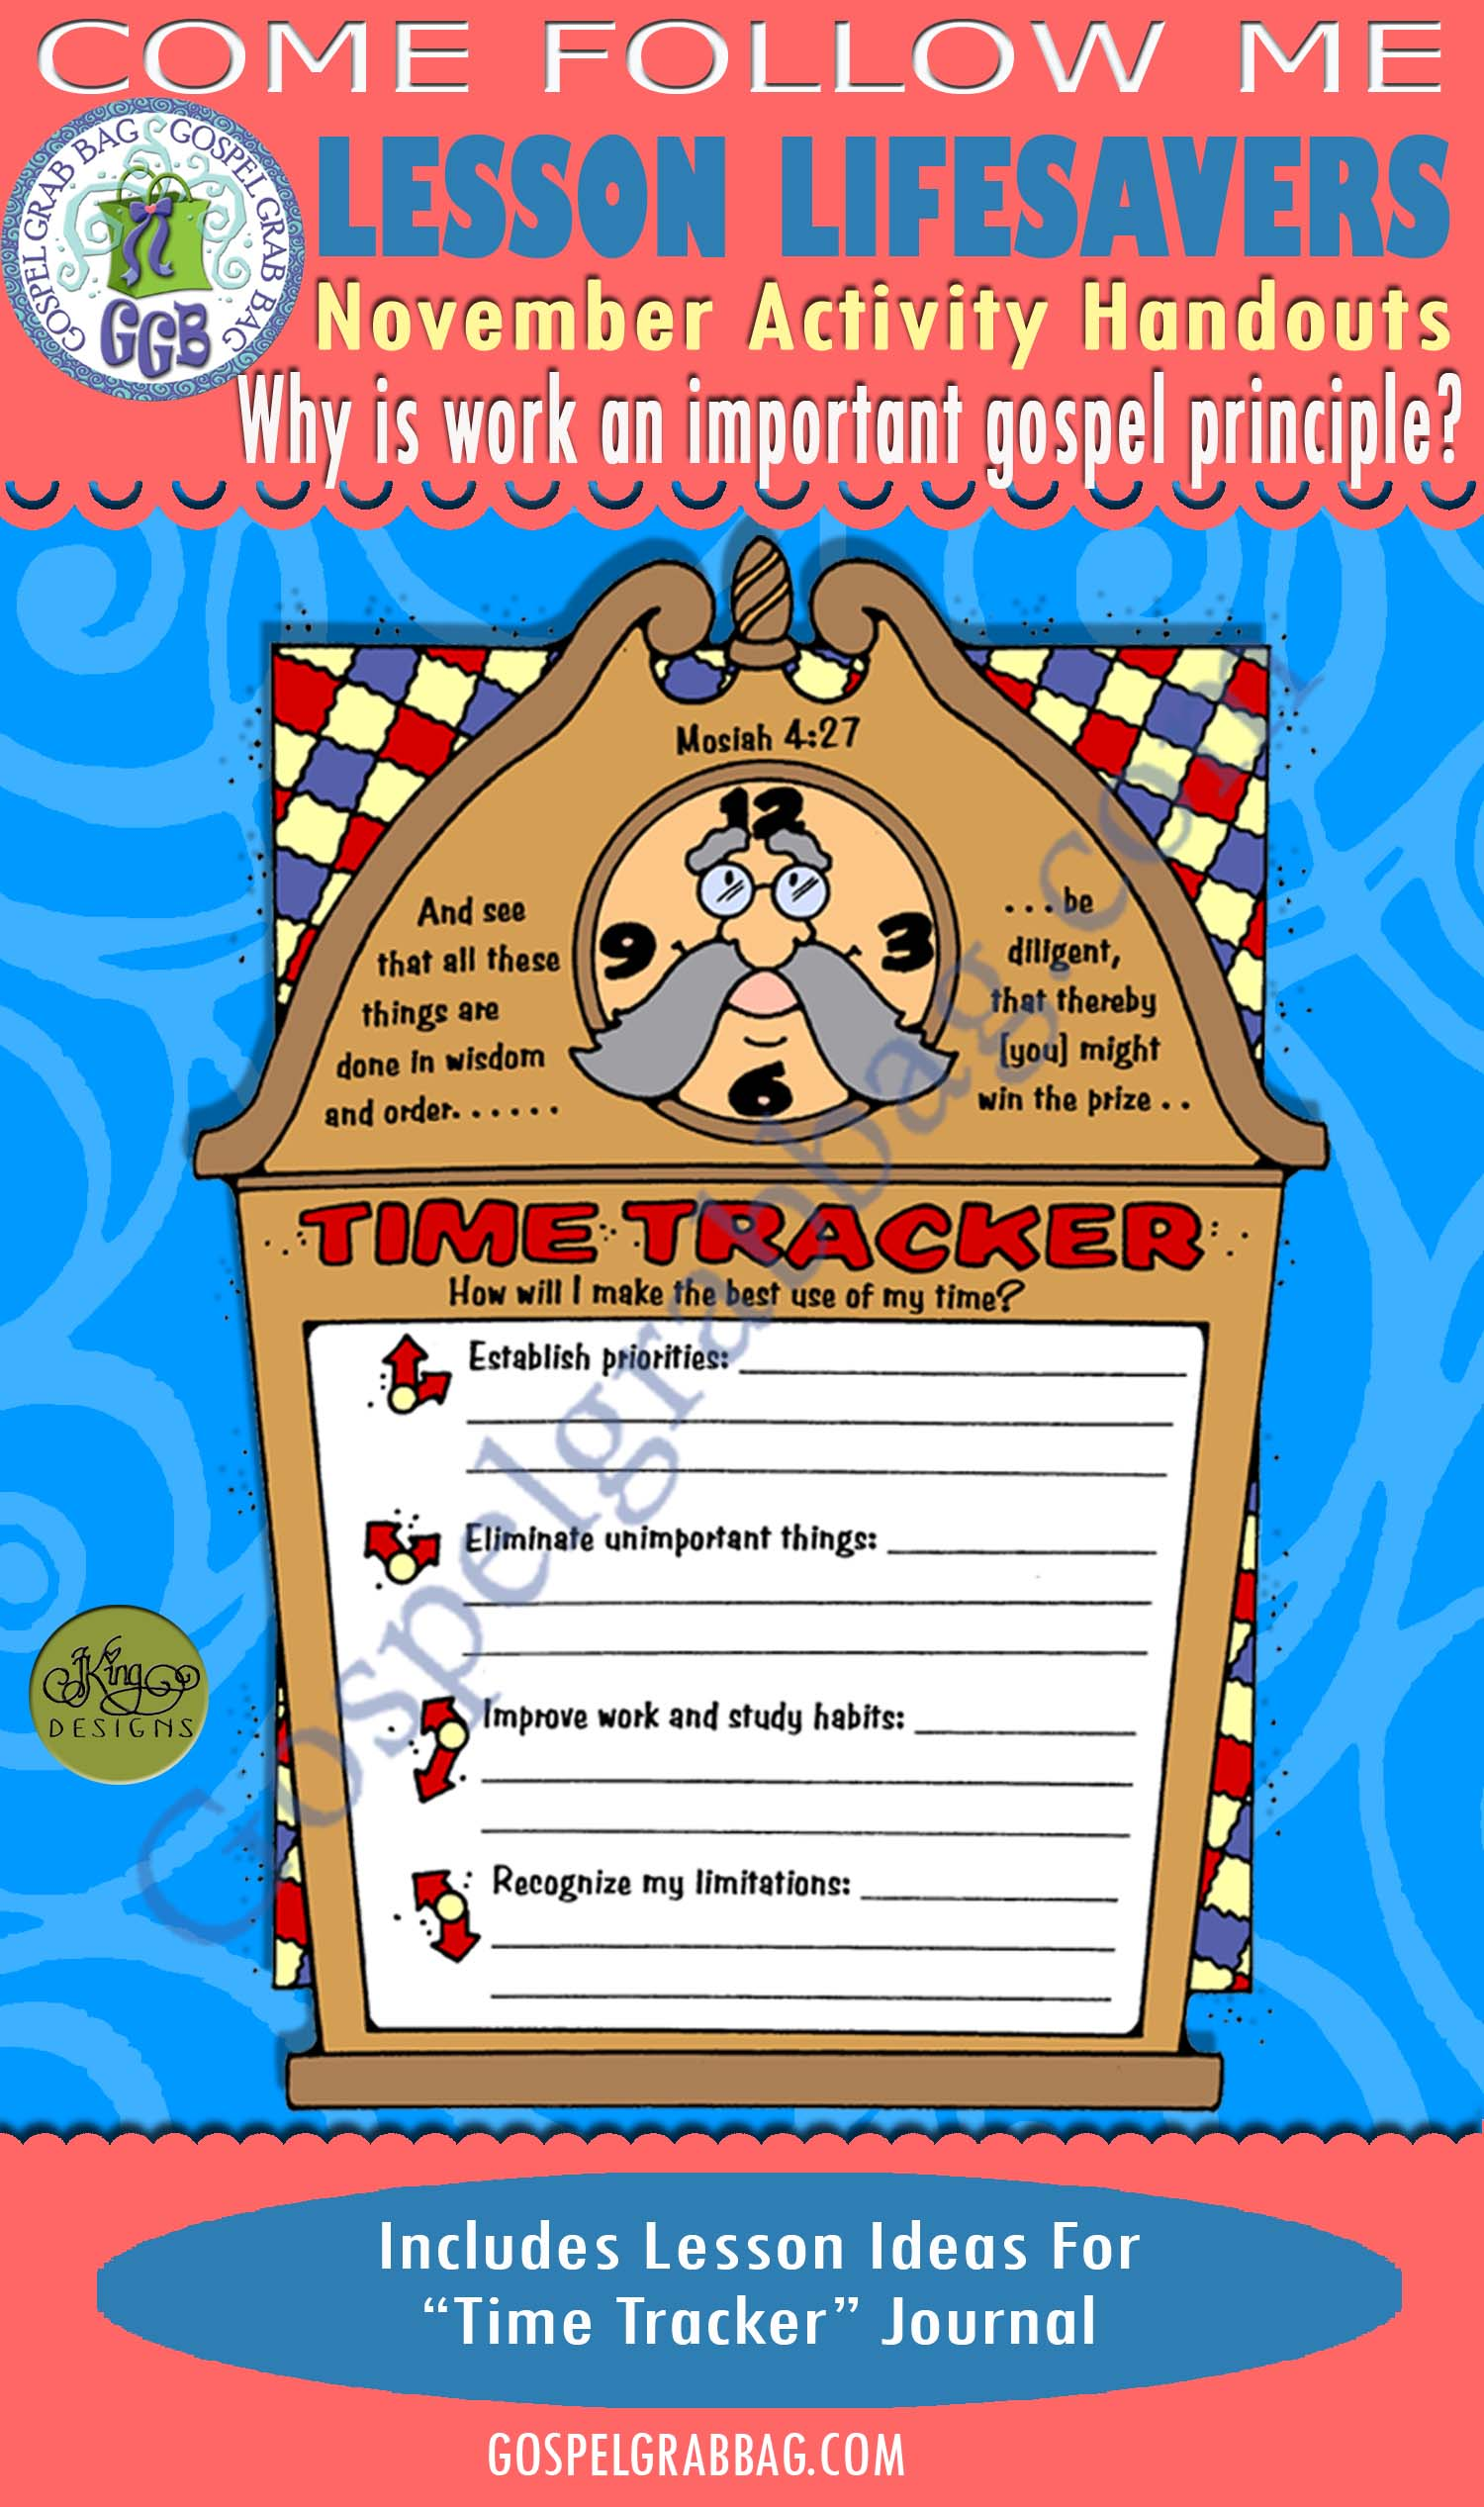 "$1.75 SELF-RELIANCE - GOALS: Come Follow Me November Lesson 4 ""Why is work an important gospel principle?"" Activity: Time Tracker journal"